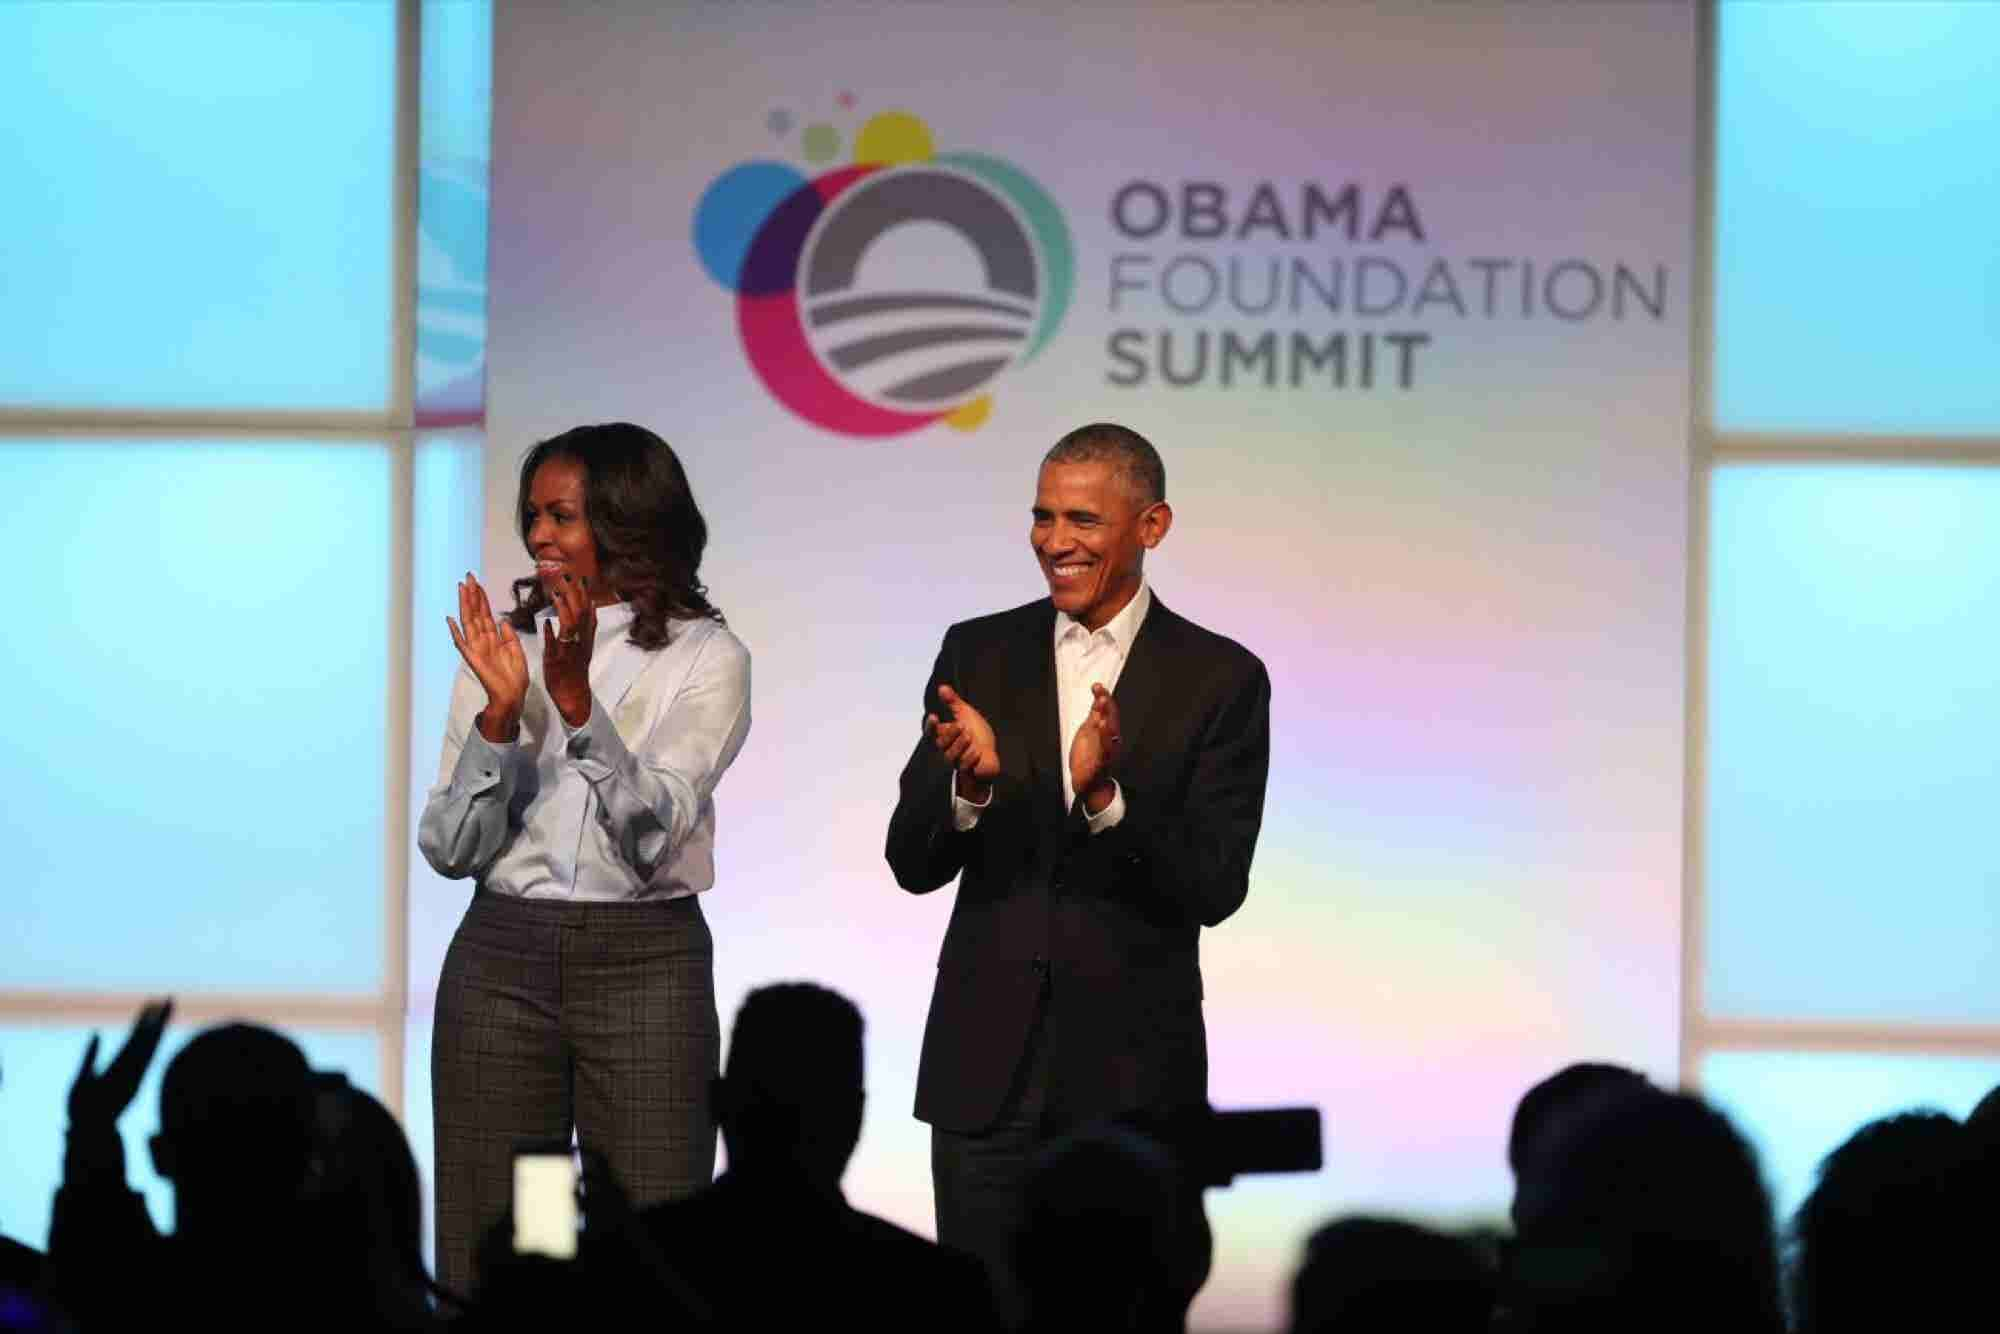 Starbucks Beats Tech at Mobile Payments and the Obamas Have a New Gig!...